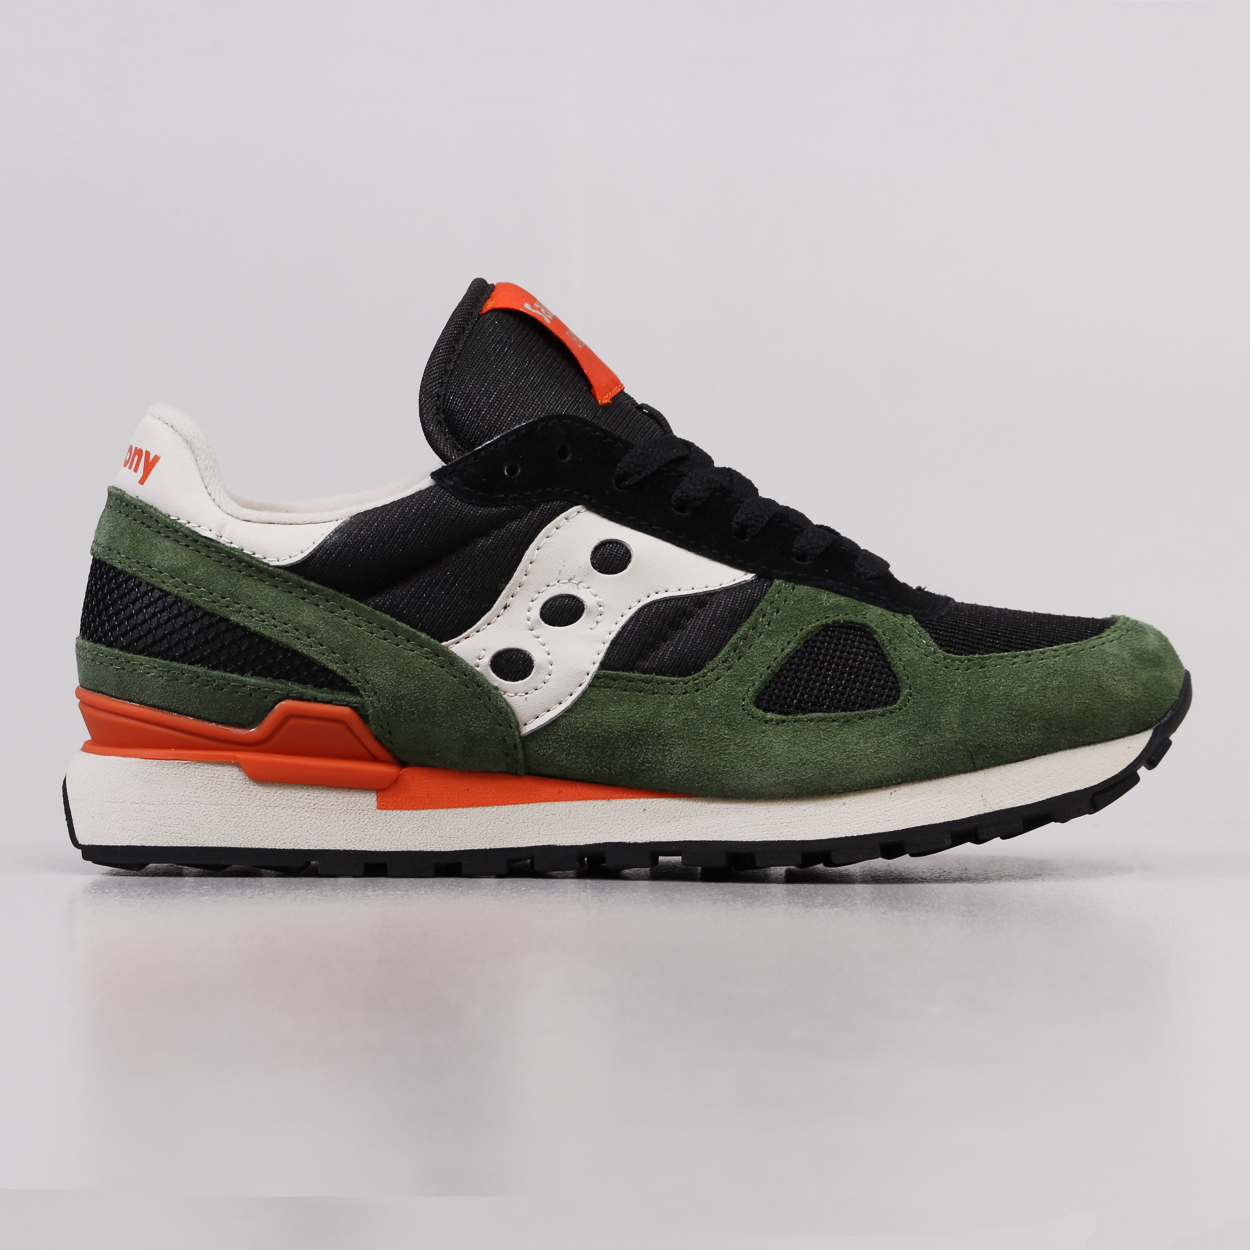 3e6ee8ea24421 Saucony Mens Shadow Original Running Shoes Black Green Trainers £52.50